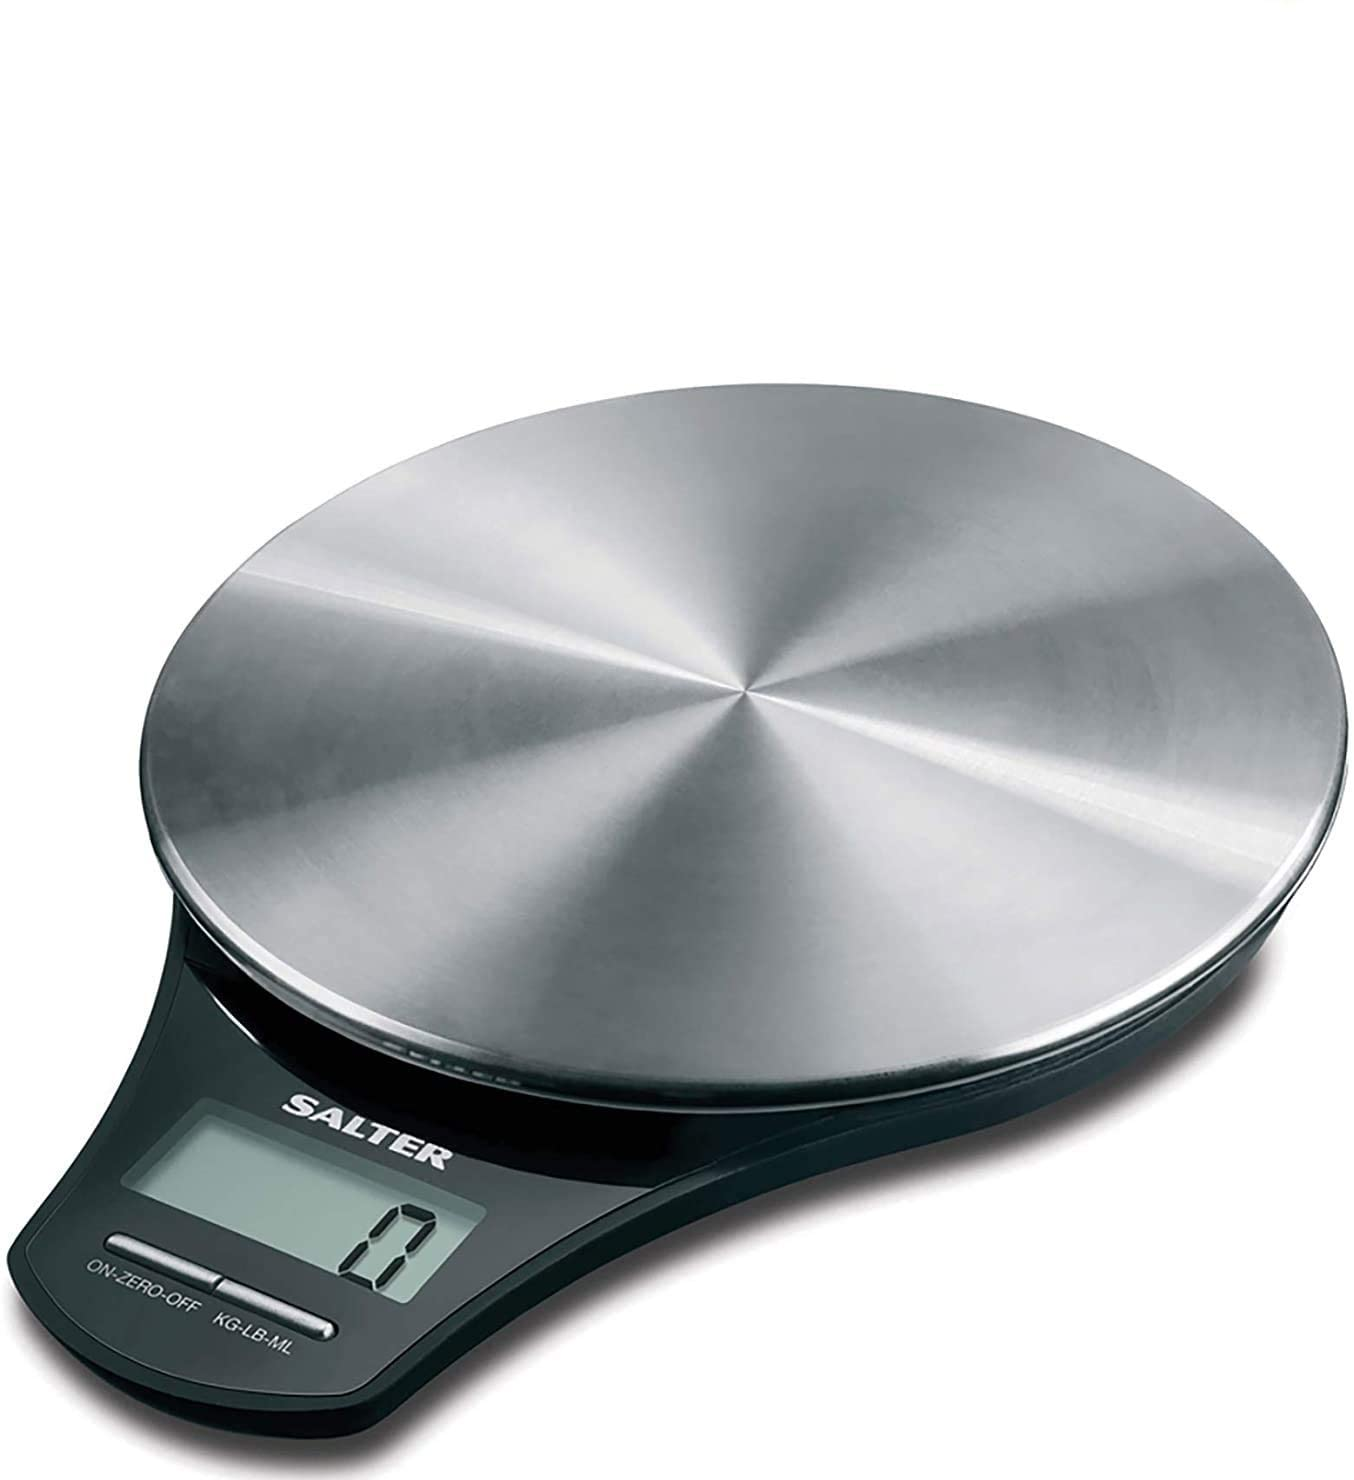 Salter Stainless Steel Digital Kitchen Weighing Scales - Electronic Cooking Scale Appliance for Home, Weigh Food with Accurate Precision up to 5kg, Plus Liquids in ml and fl. Oz. 15 Year Guarantee